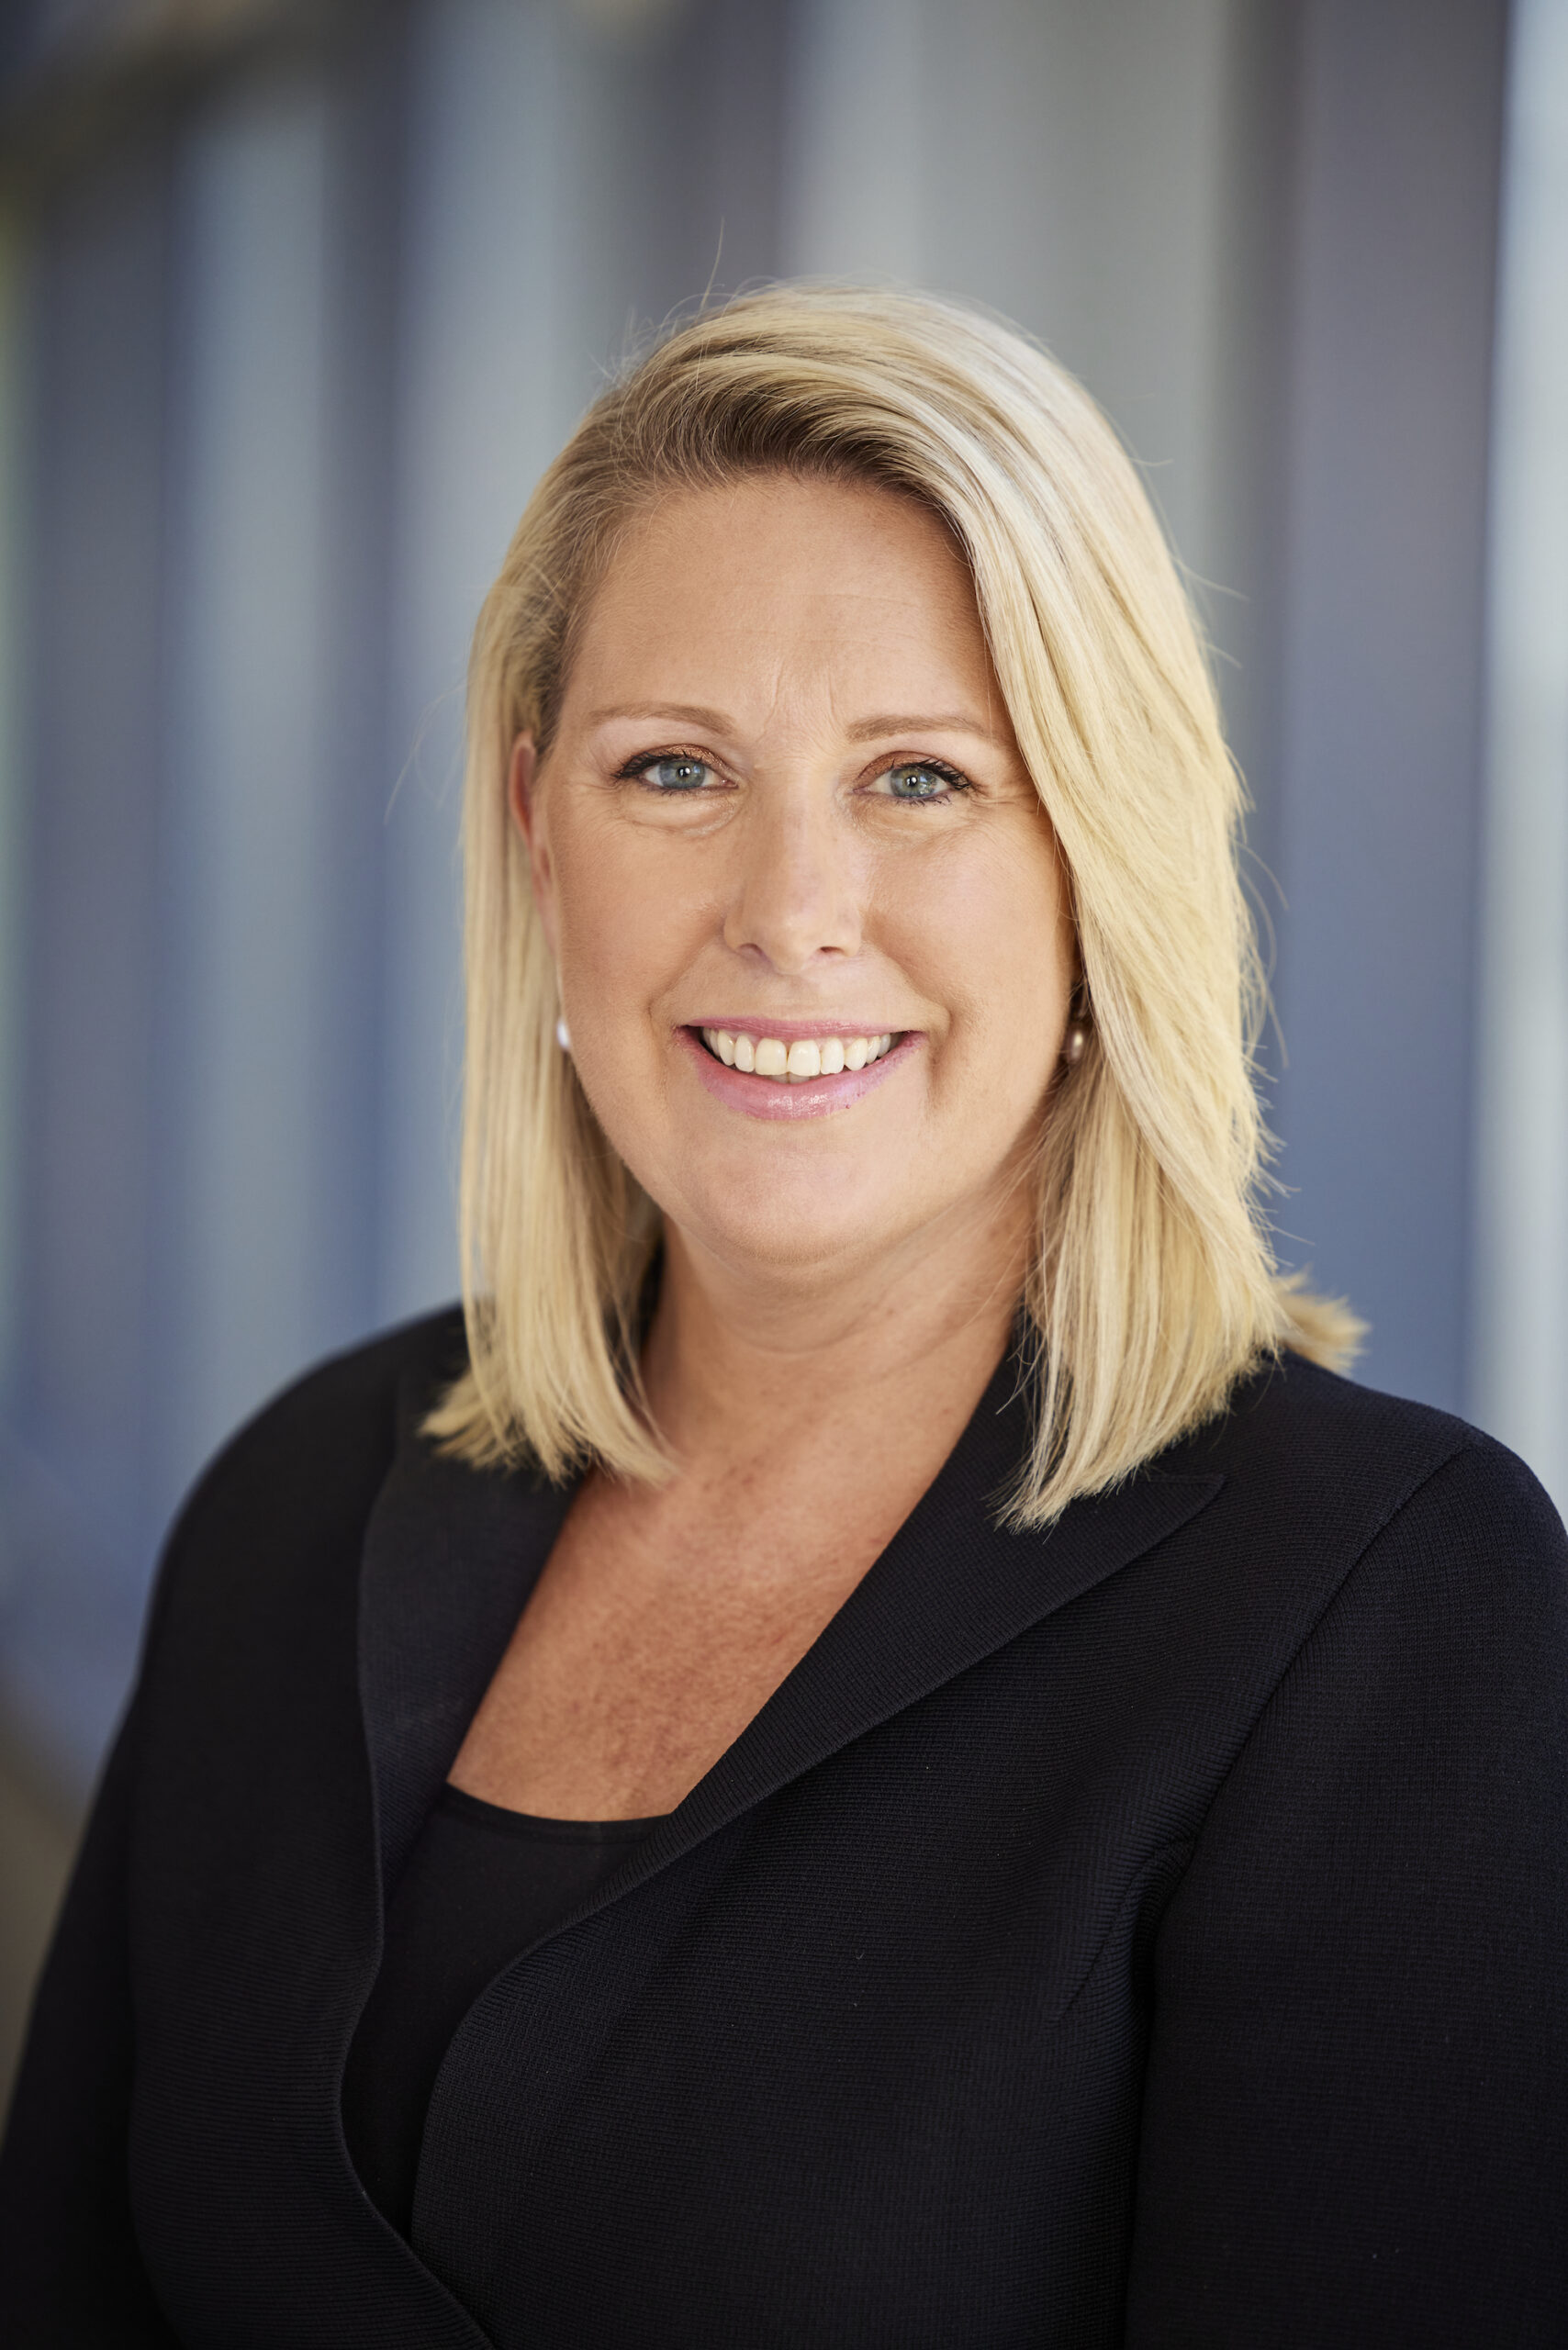 Clare Gill joins Seven West Media